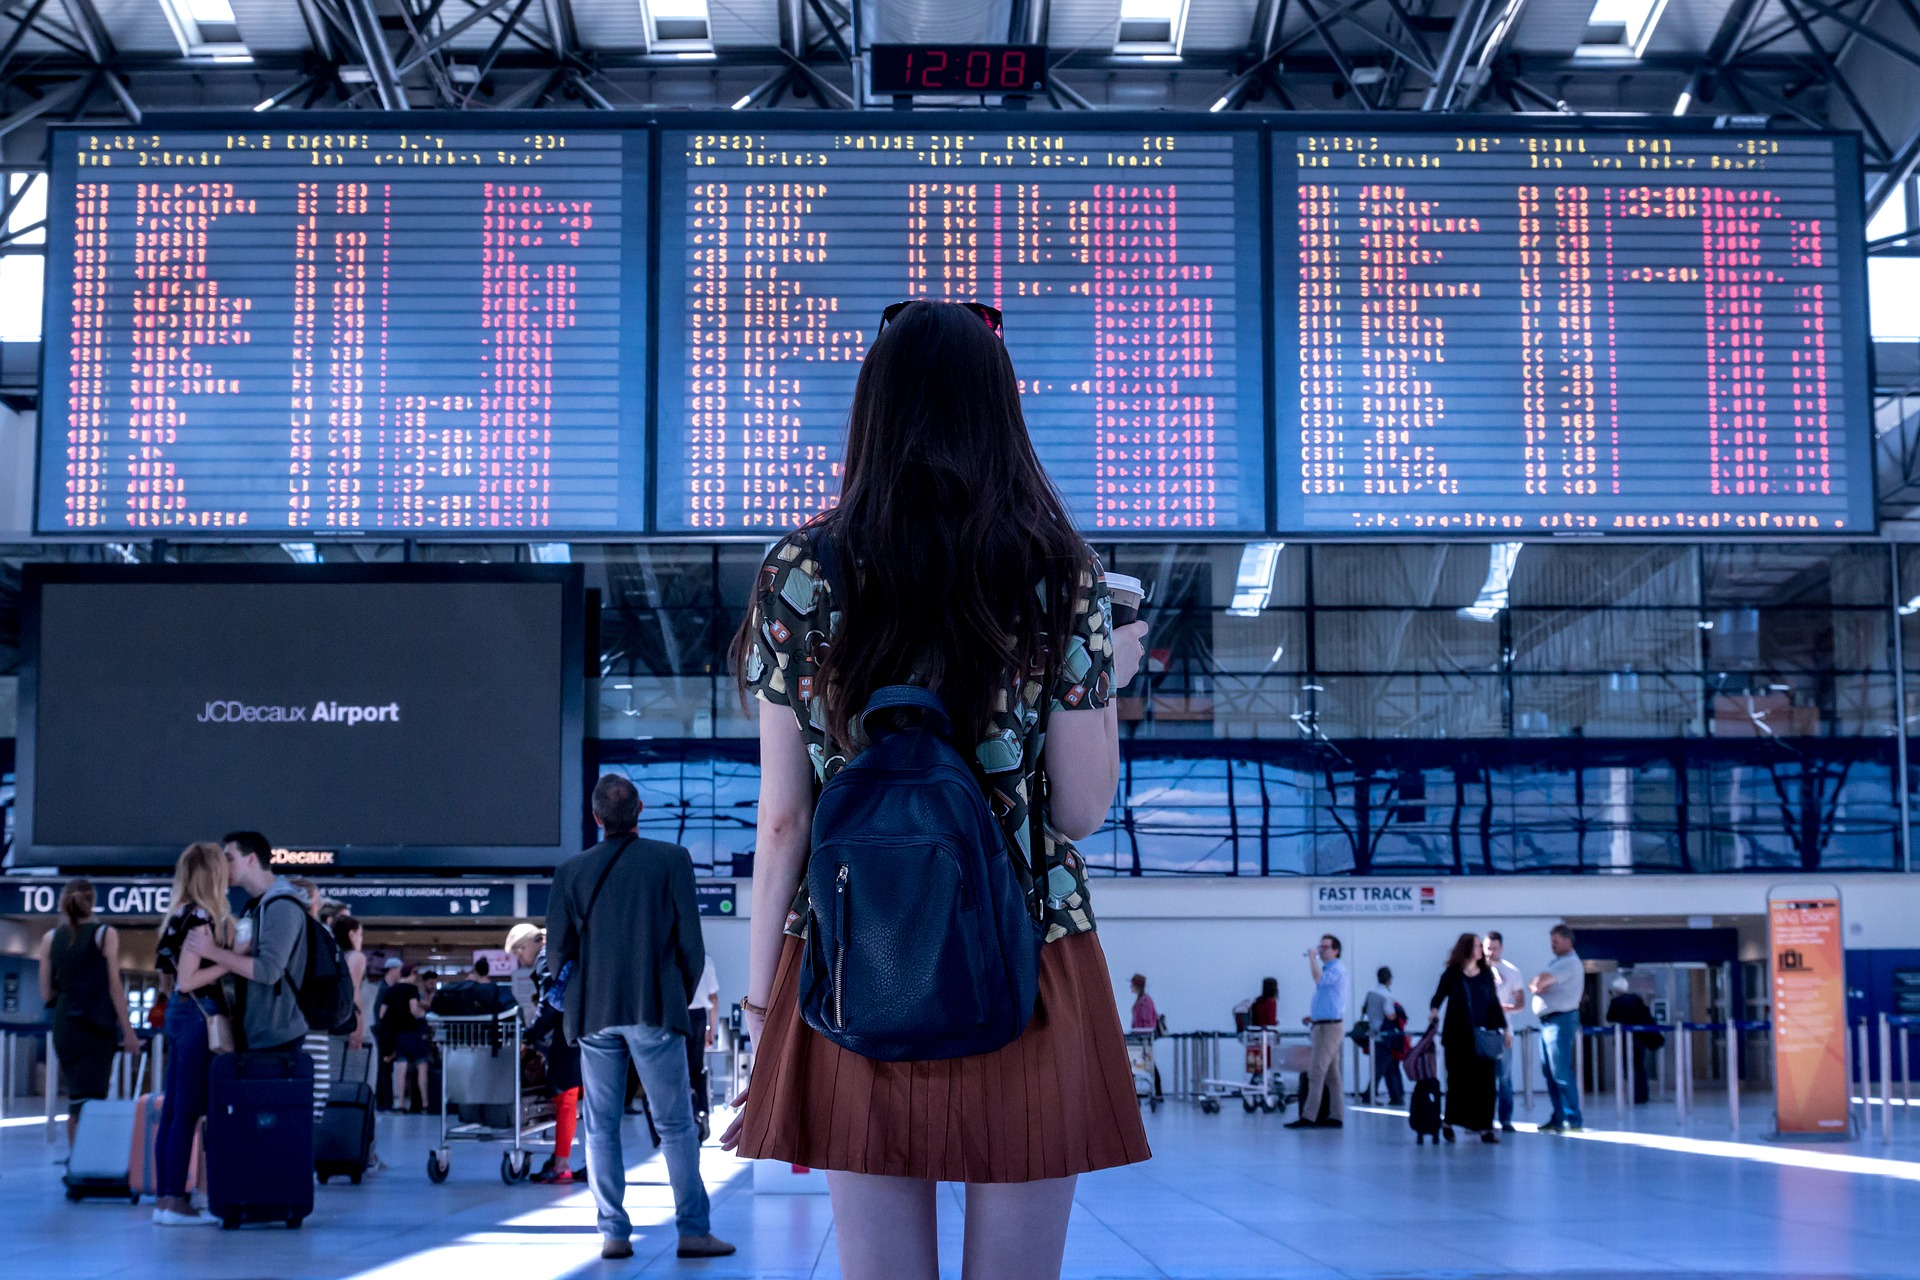 Girl-Airport-Flights-Travel